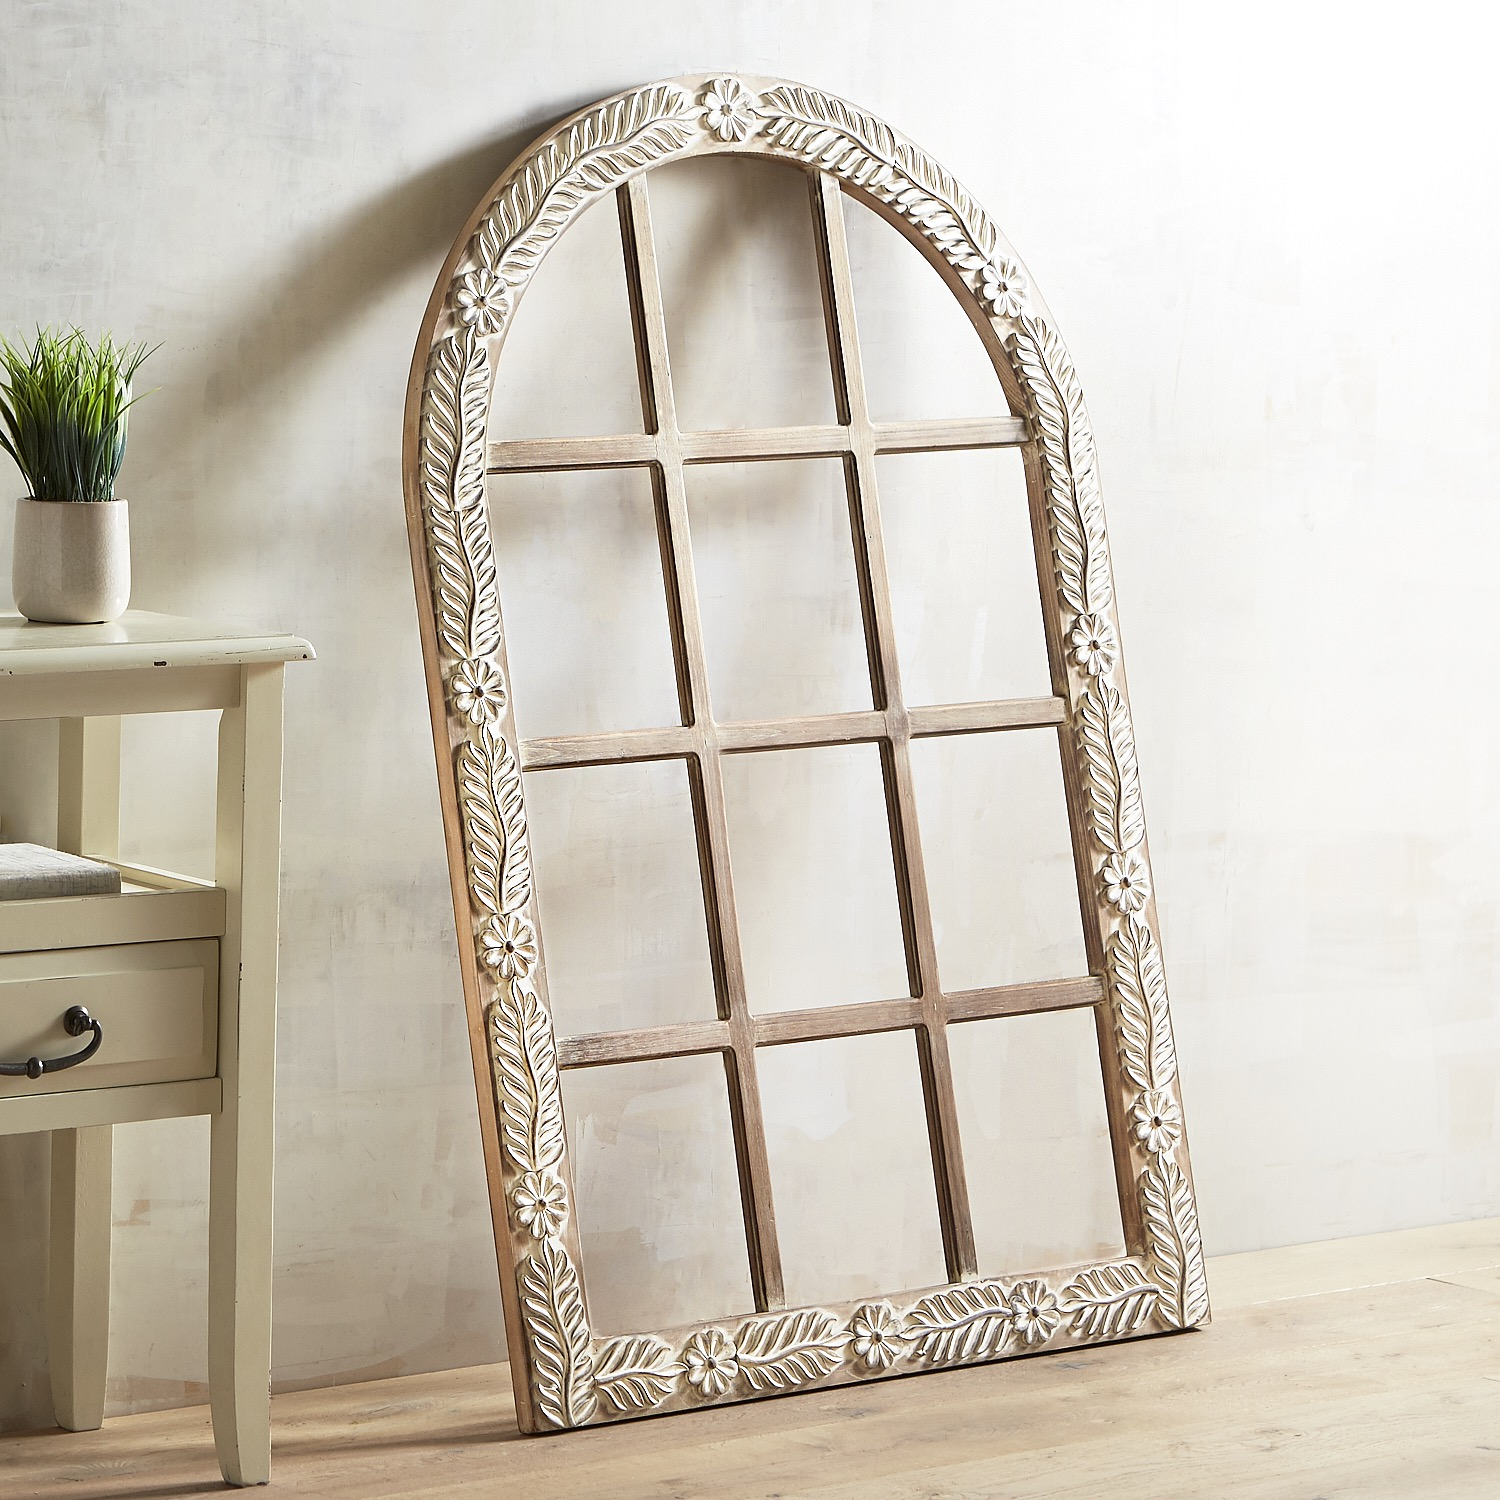 Carved Floral Arch Wall Decor